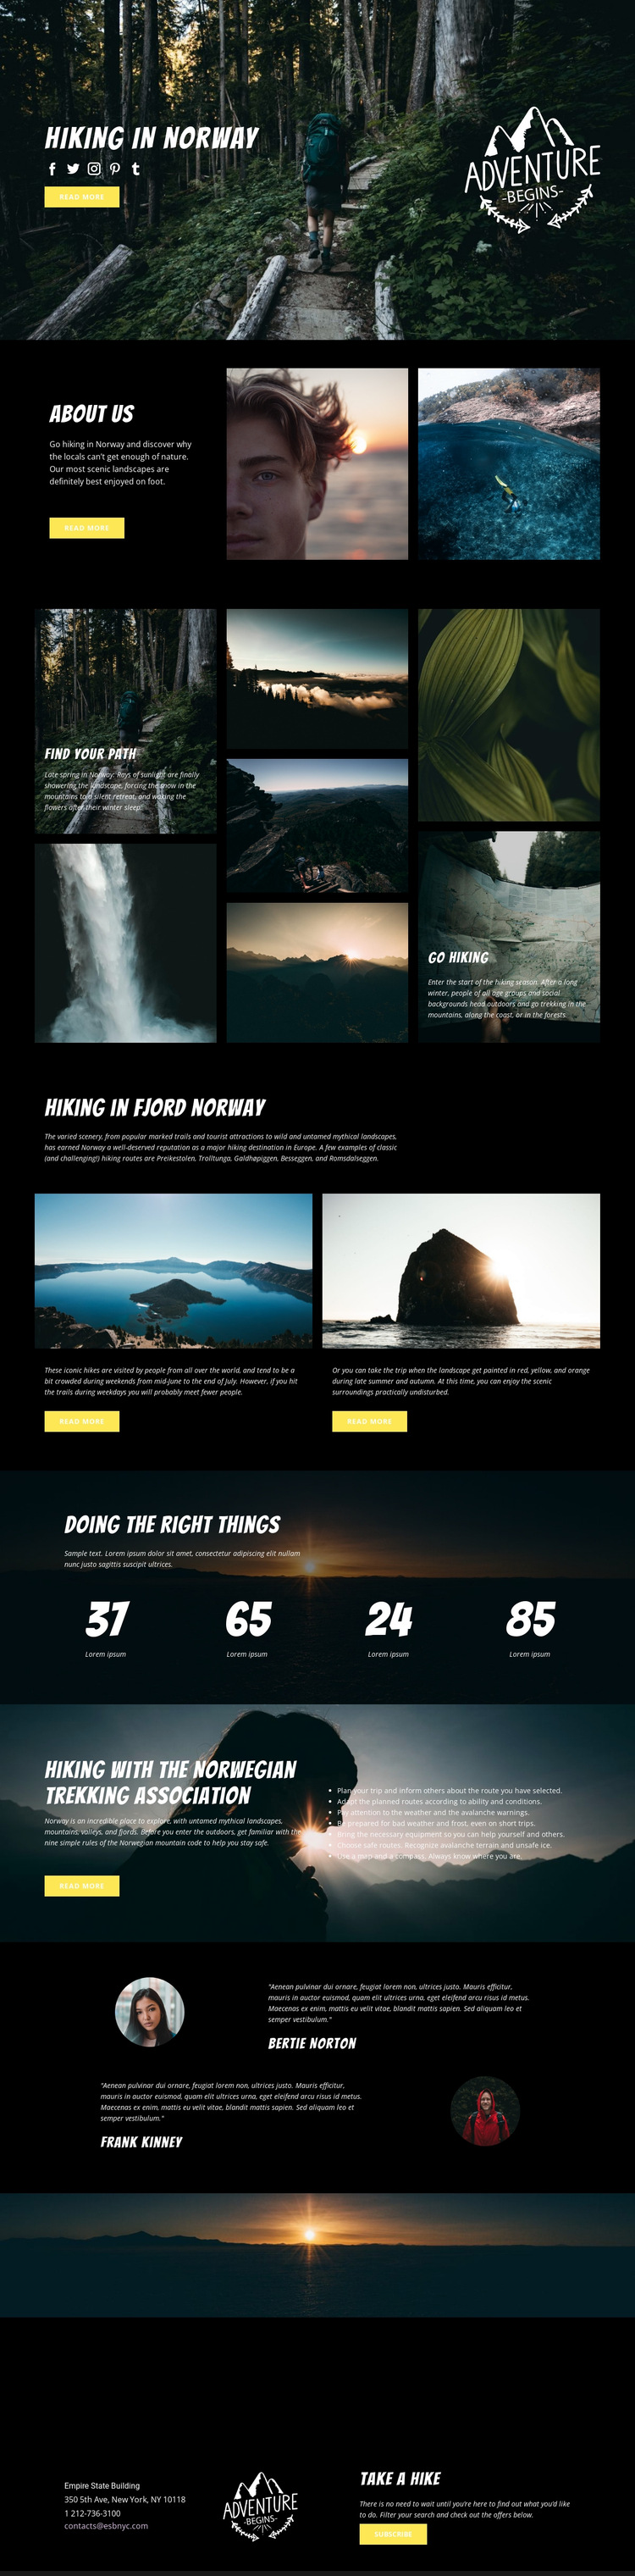 Norway HTML5 Template